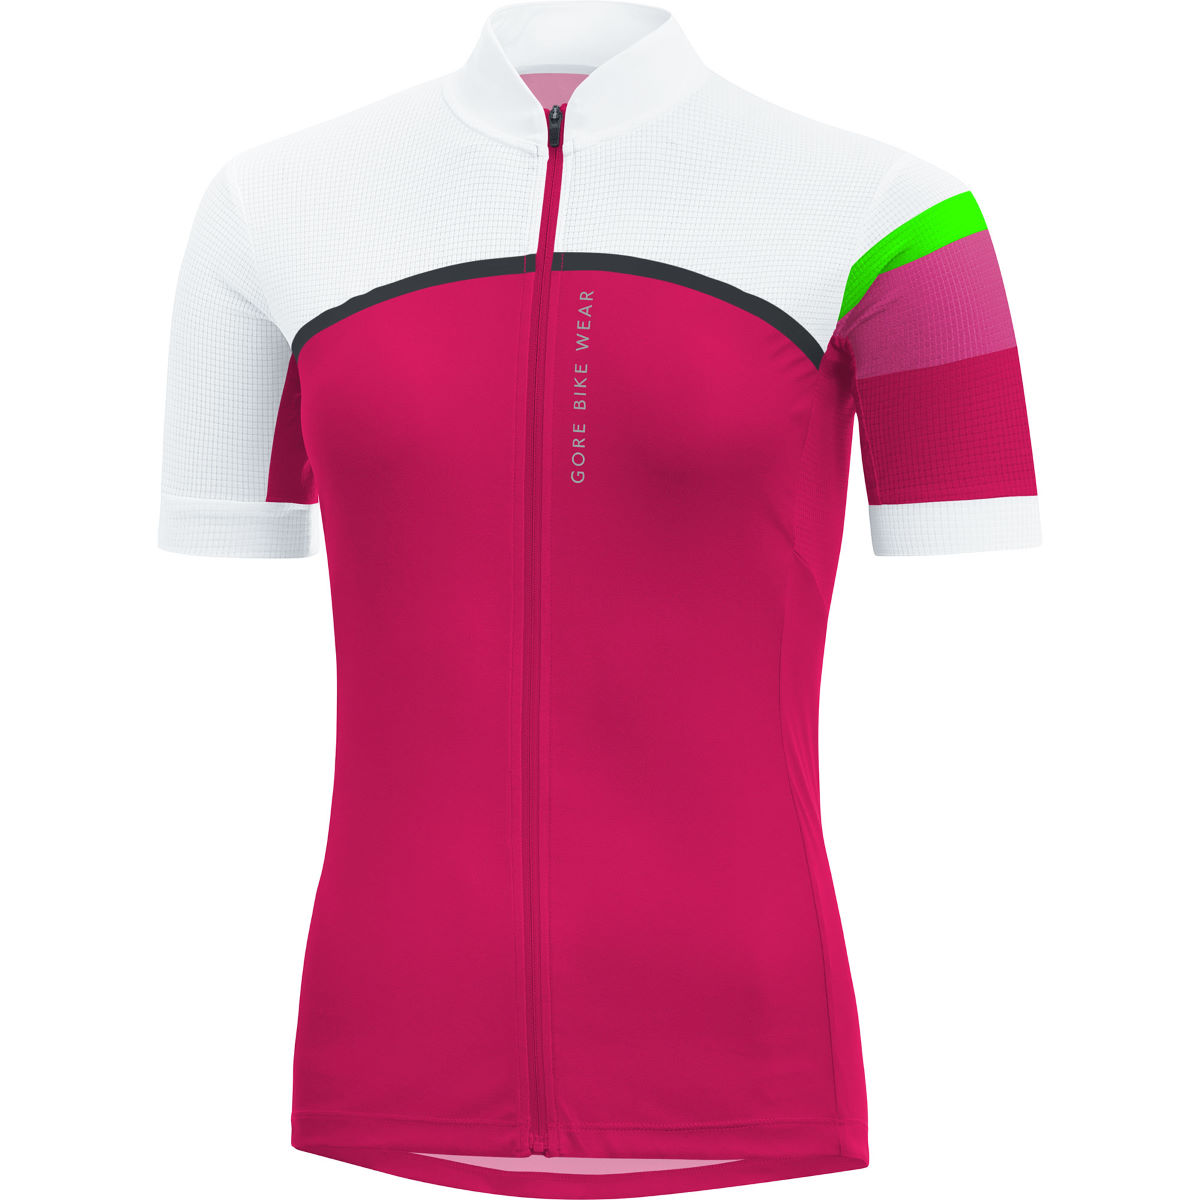 Maillot Femme Gore Bike Wear Power CC (manches courtes) - XL